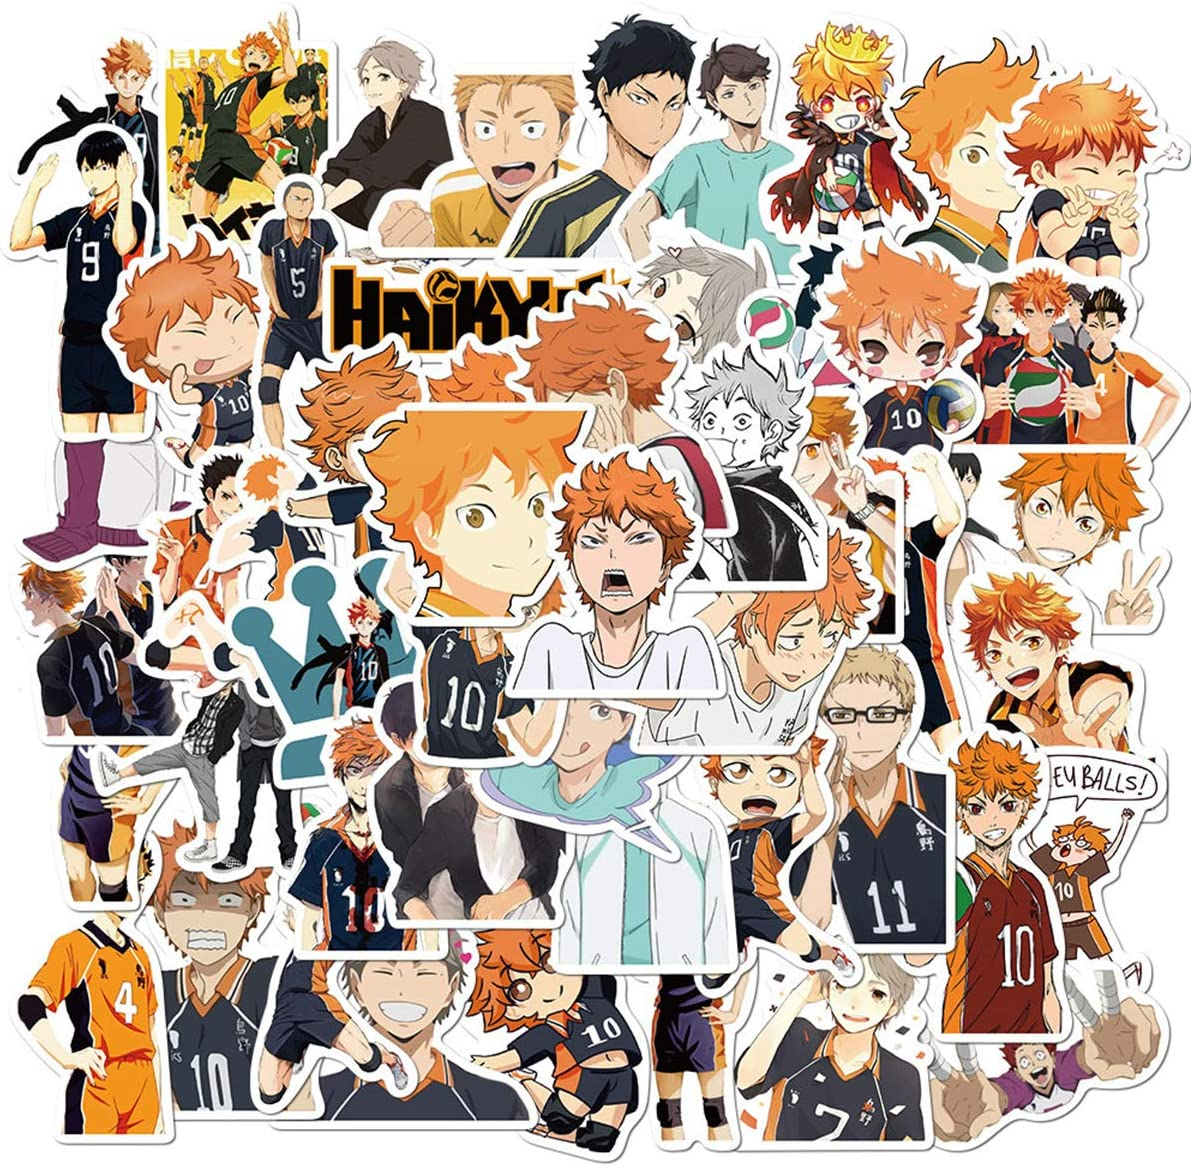 Amazon Com Haikyuu Cartoon Japanese Anime Stickers Lovely Boy And Girl Sticker Laptop Computer Bedroom Wardrobe Car Skateboard Motorcycle Bicycle Mobile Phone Luggage Guitar Diy Decal Arts Crafts Sewing